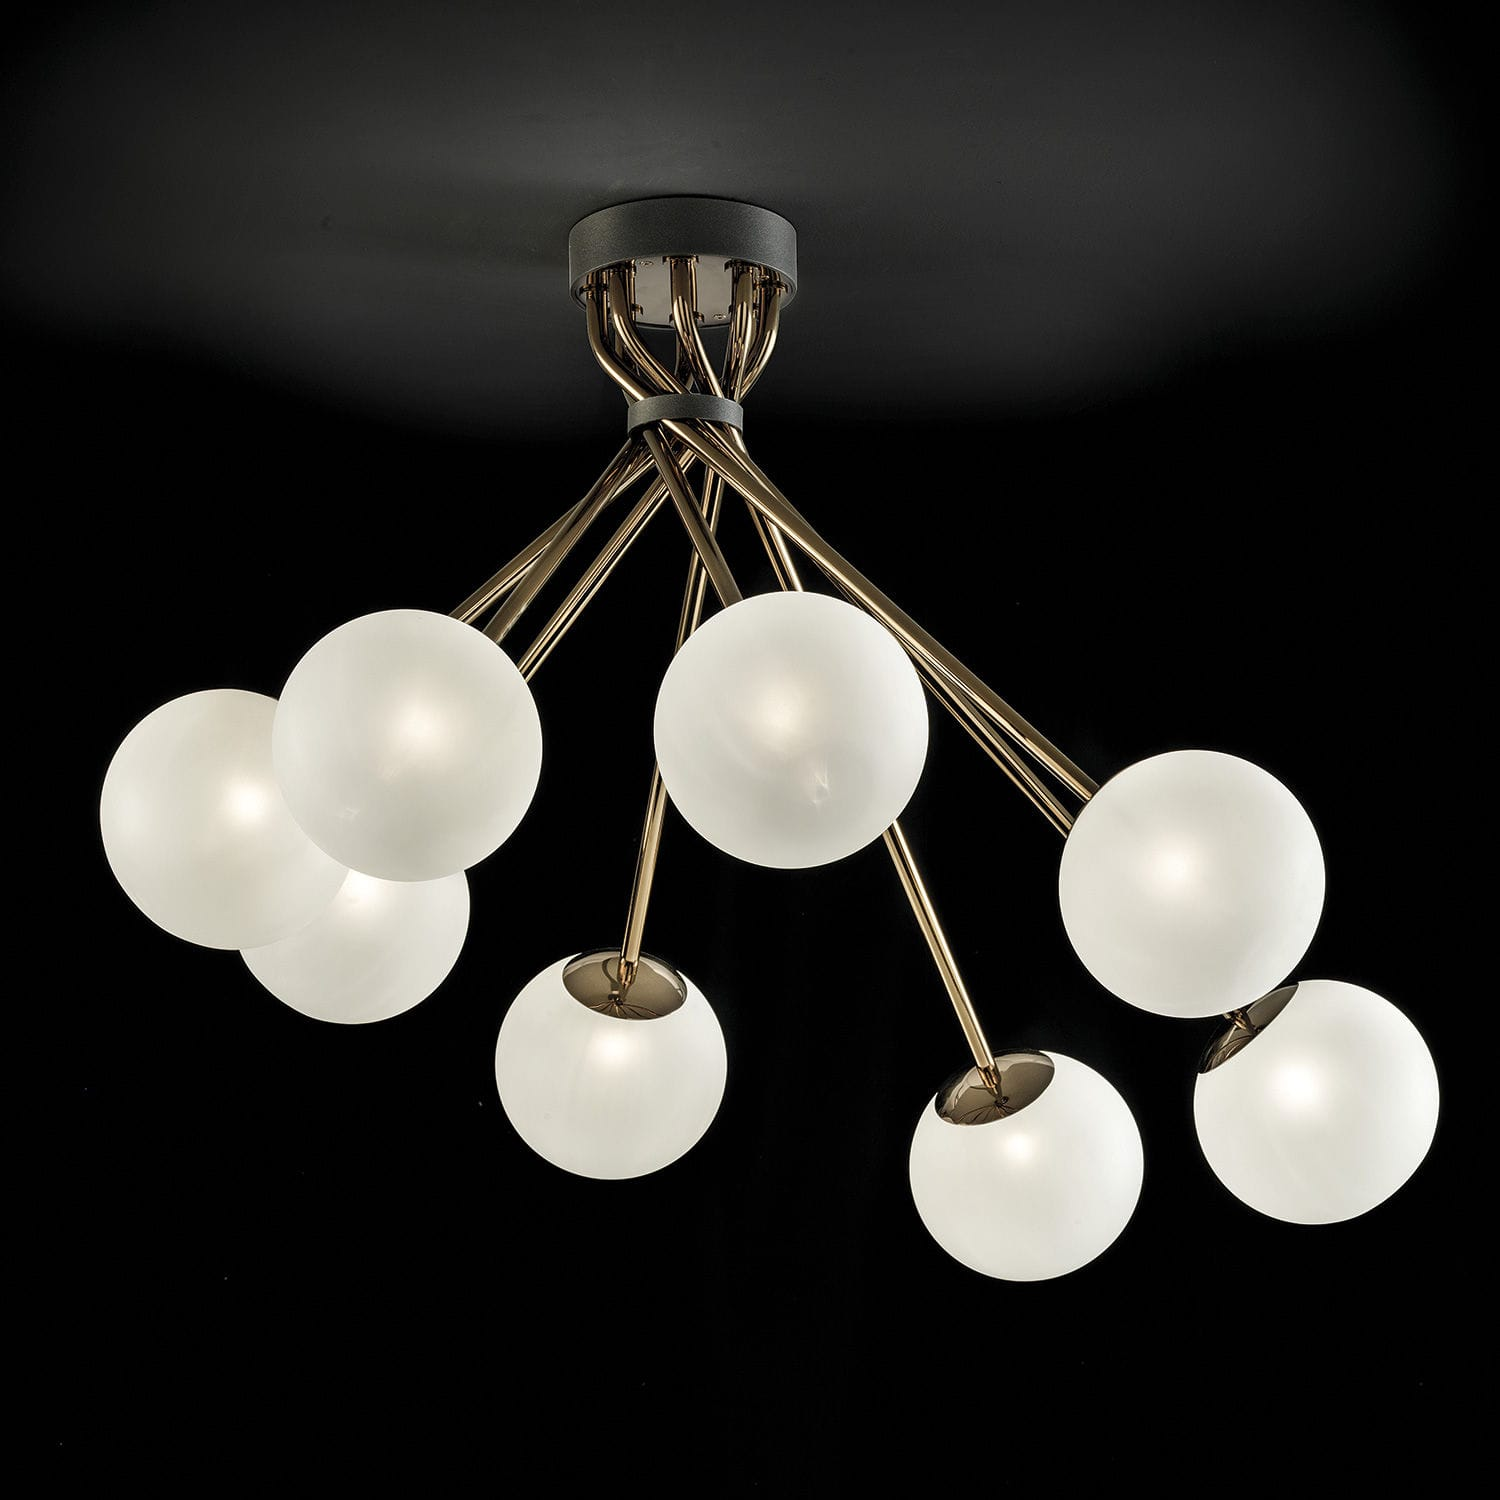 contemporary ceiling light / glass / LED - 2392/PL TEA